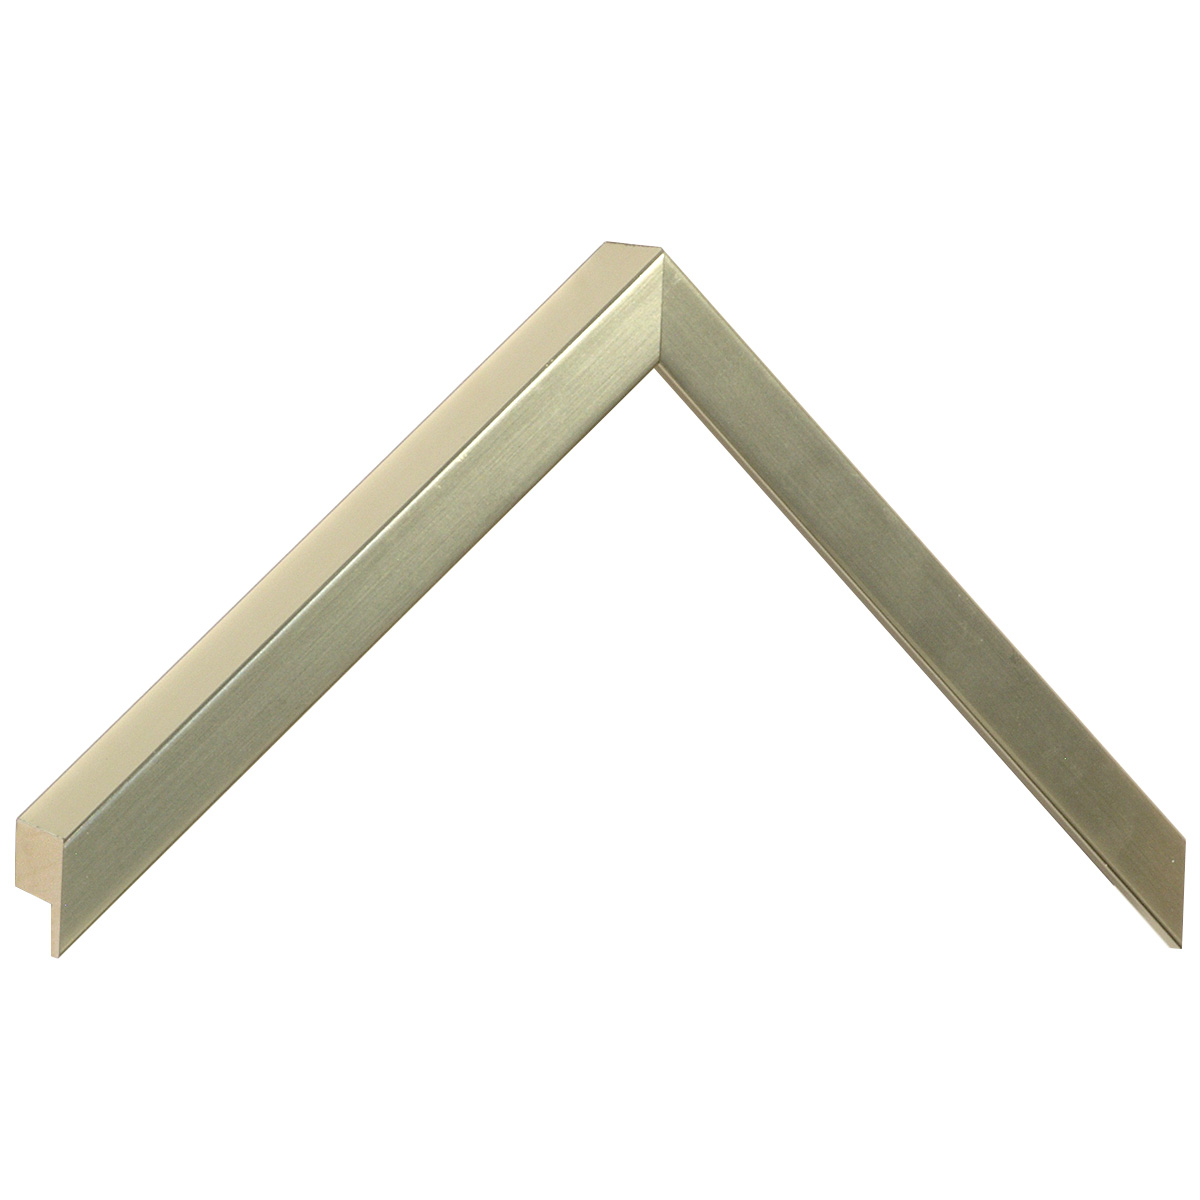 Moulding ayous, width 15mm height 32 - Platinum